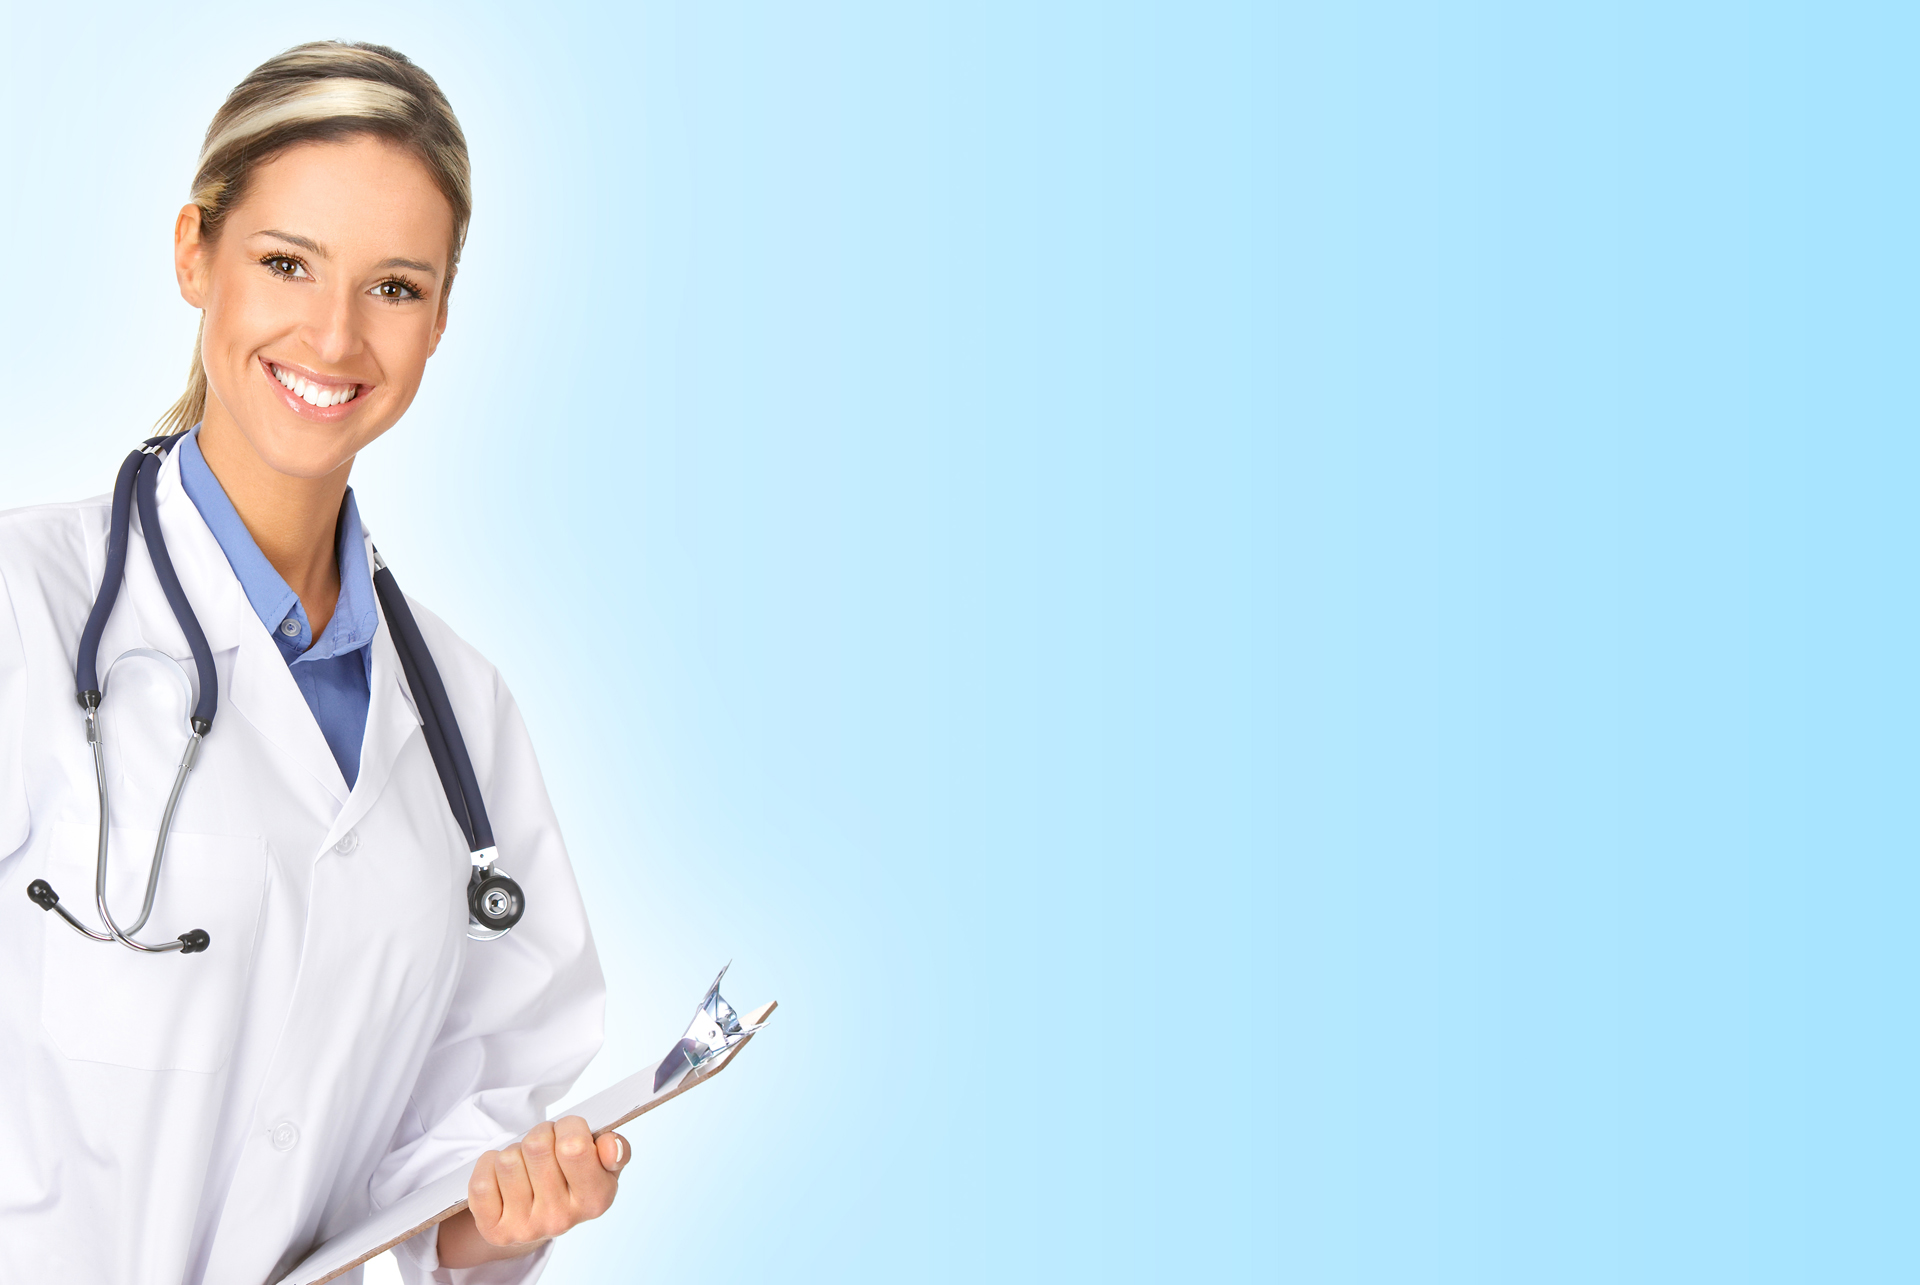 Free Health And Medical Powerpoint Backgrounds Wallpapers Download